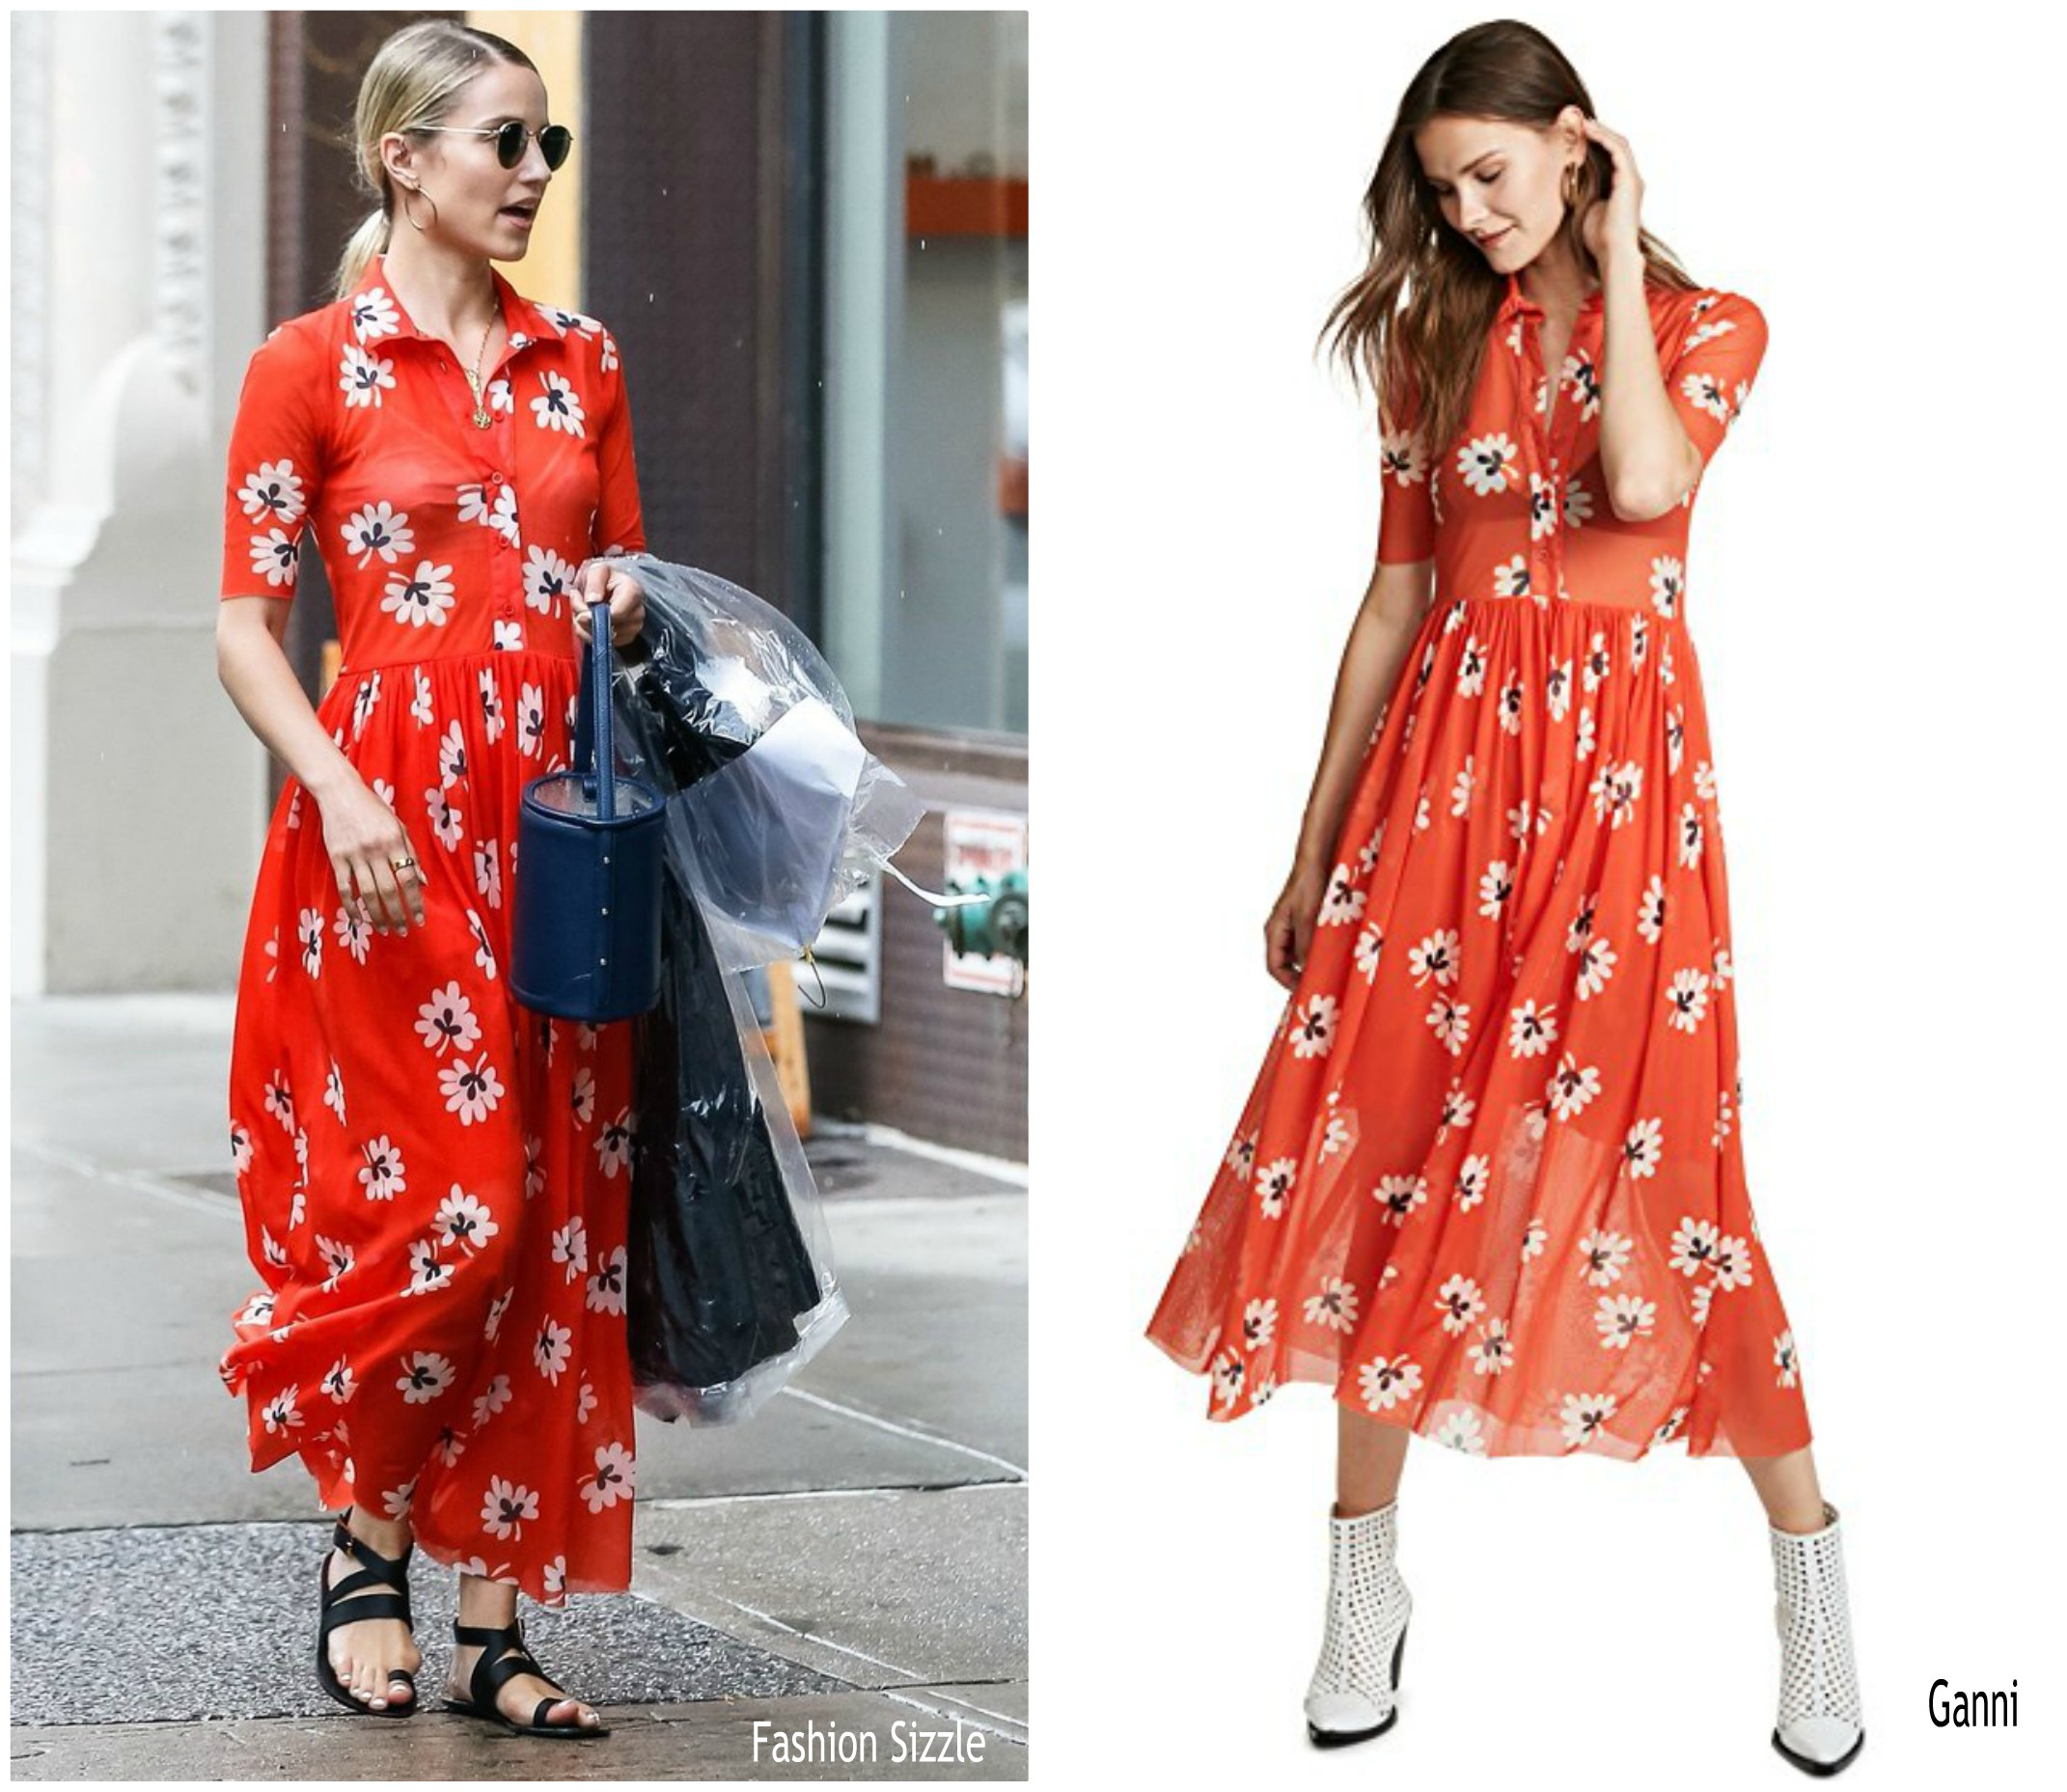 dianna-agron-in-ganni-out-in-new-york-city